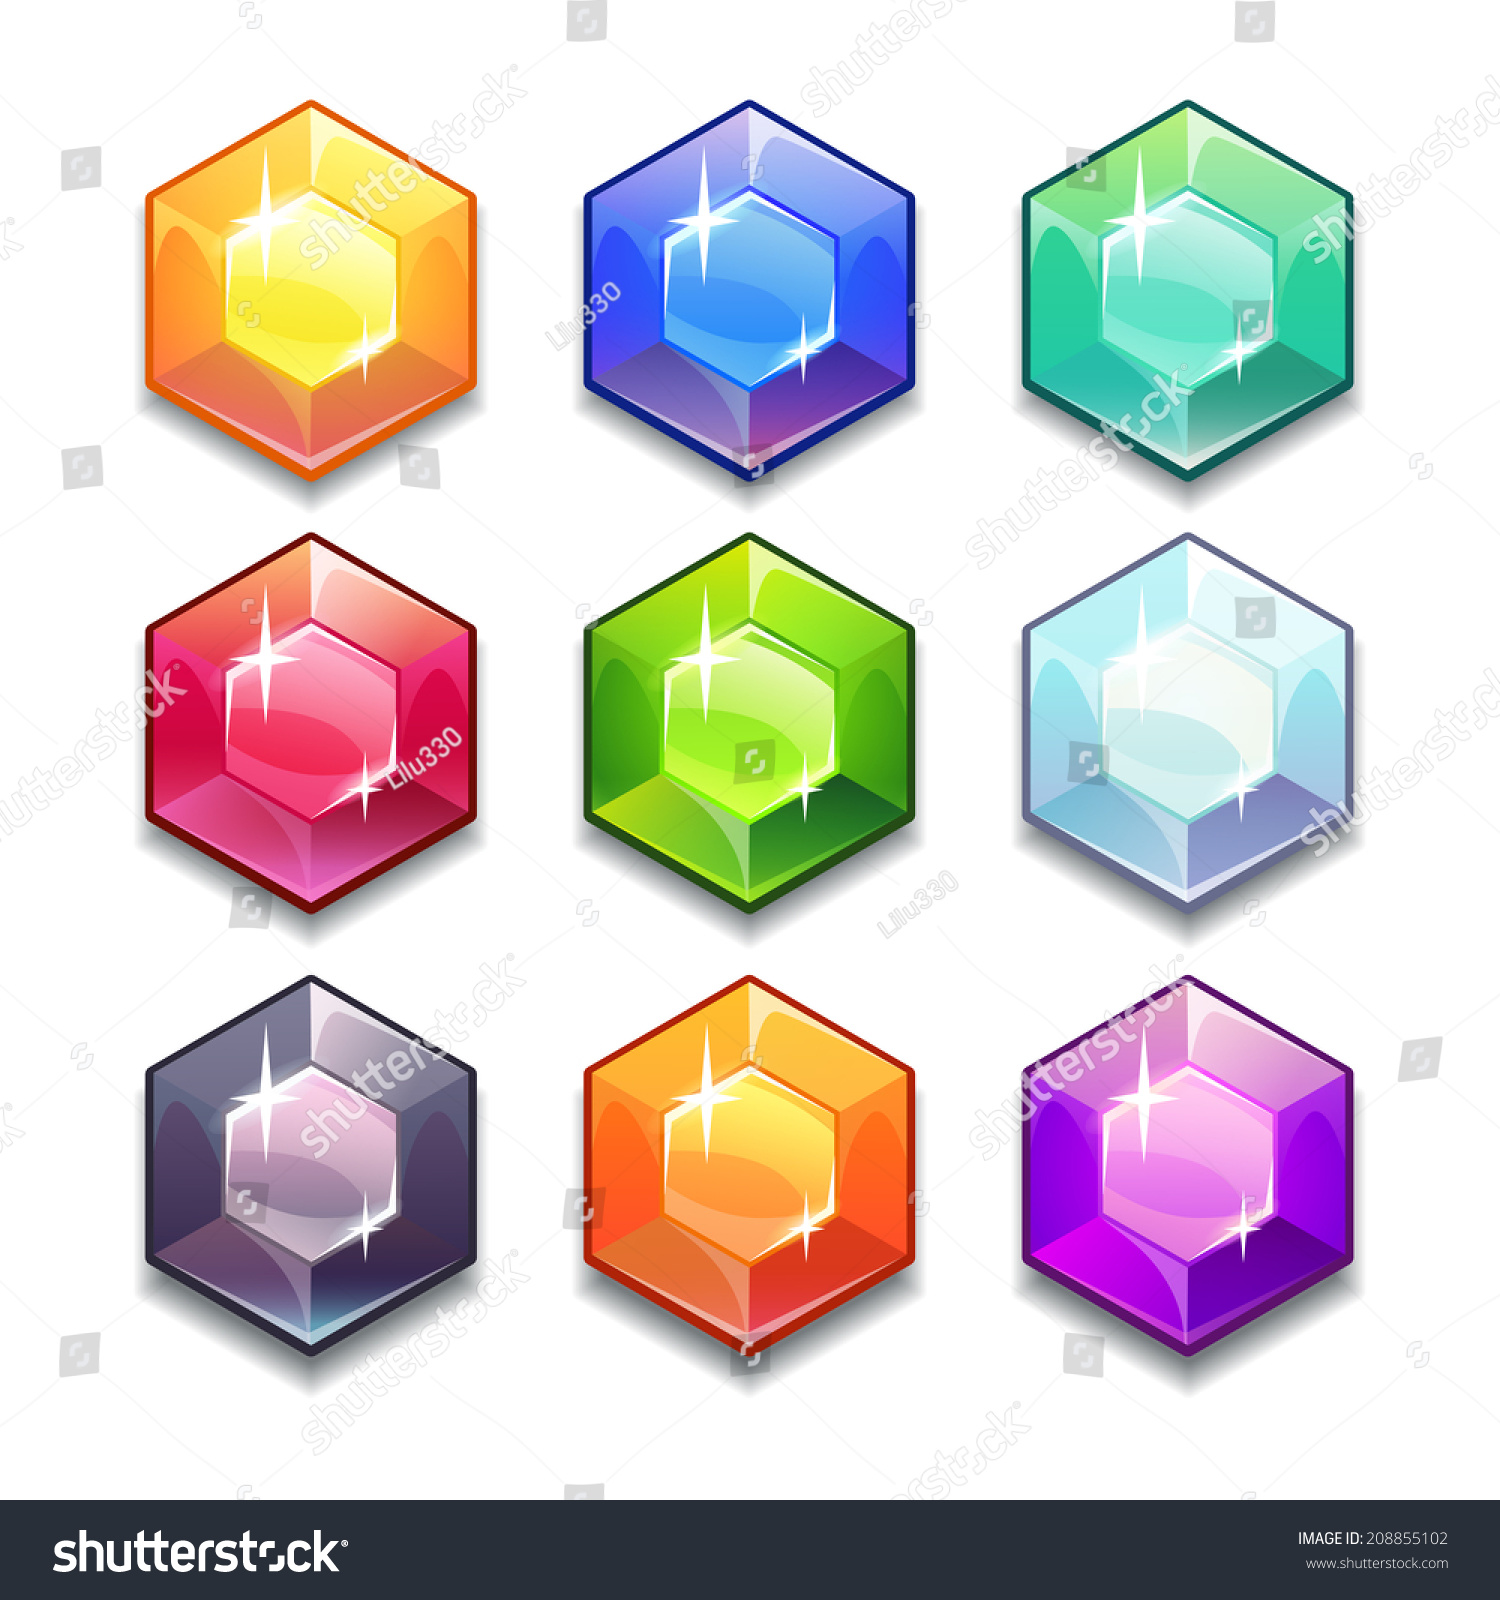 Cartoon Colored Marbles : Cartoon vector gems and diamonds icons set in different